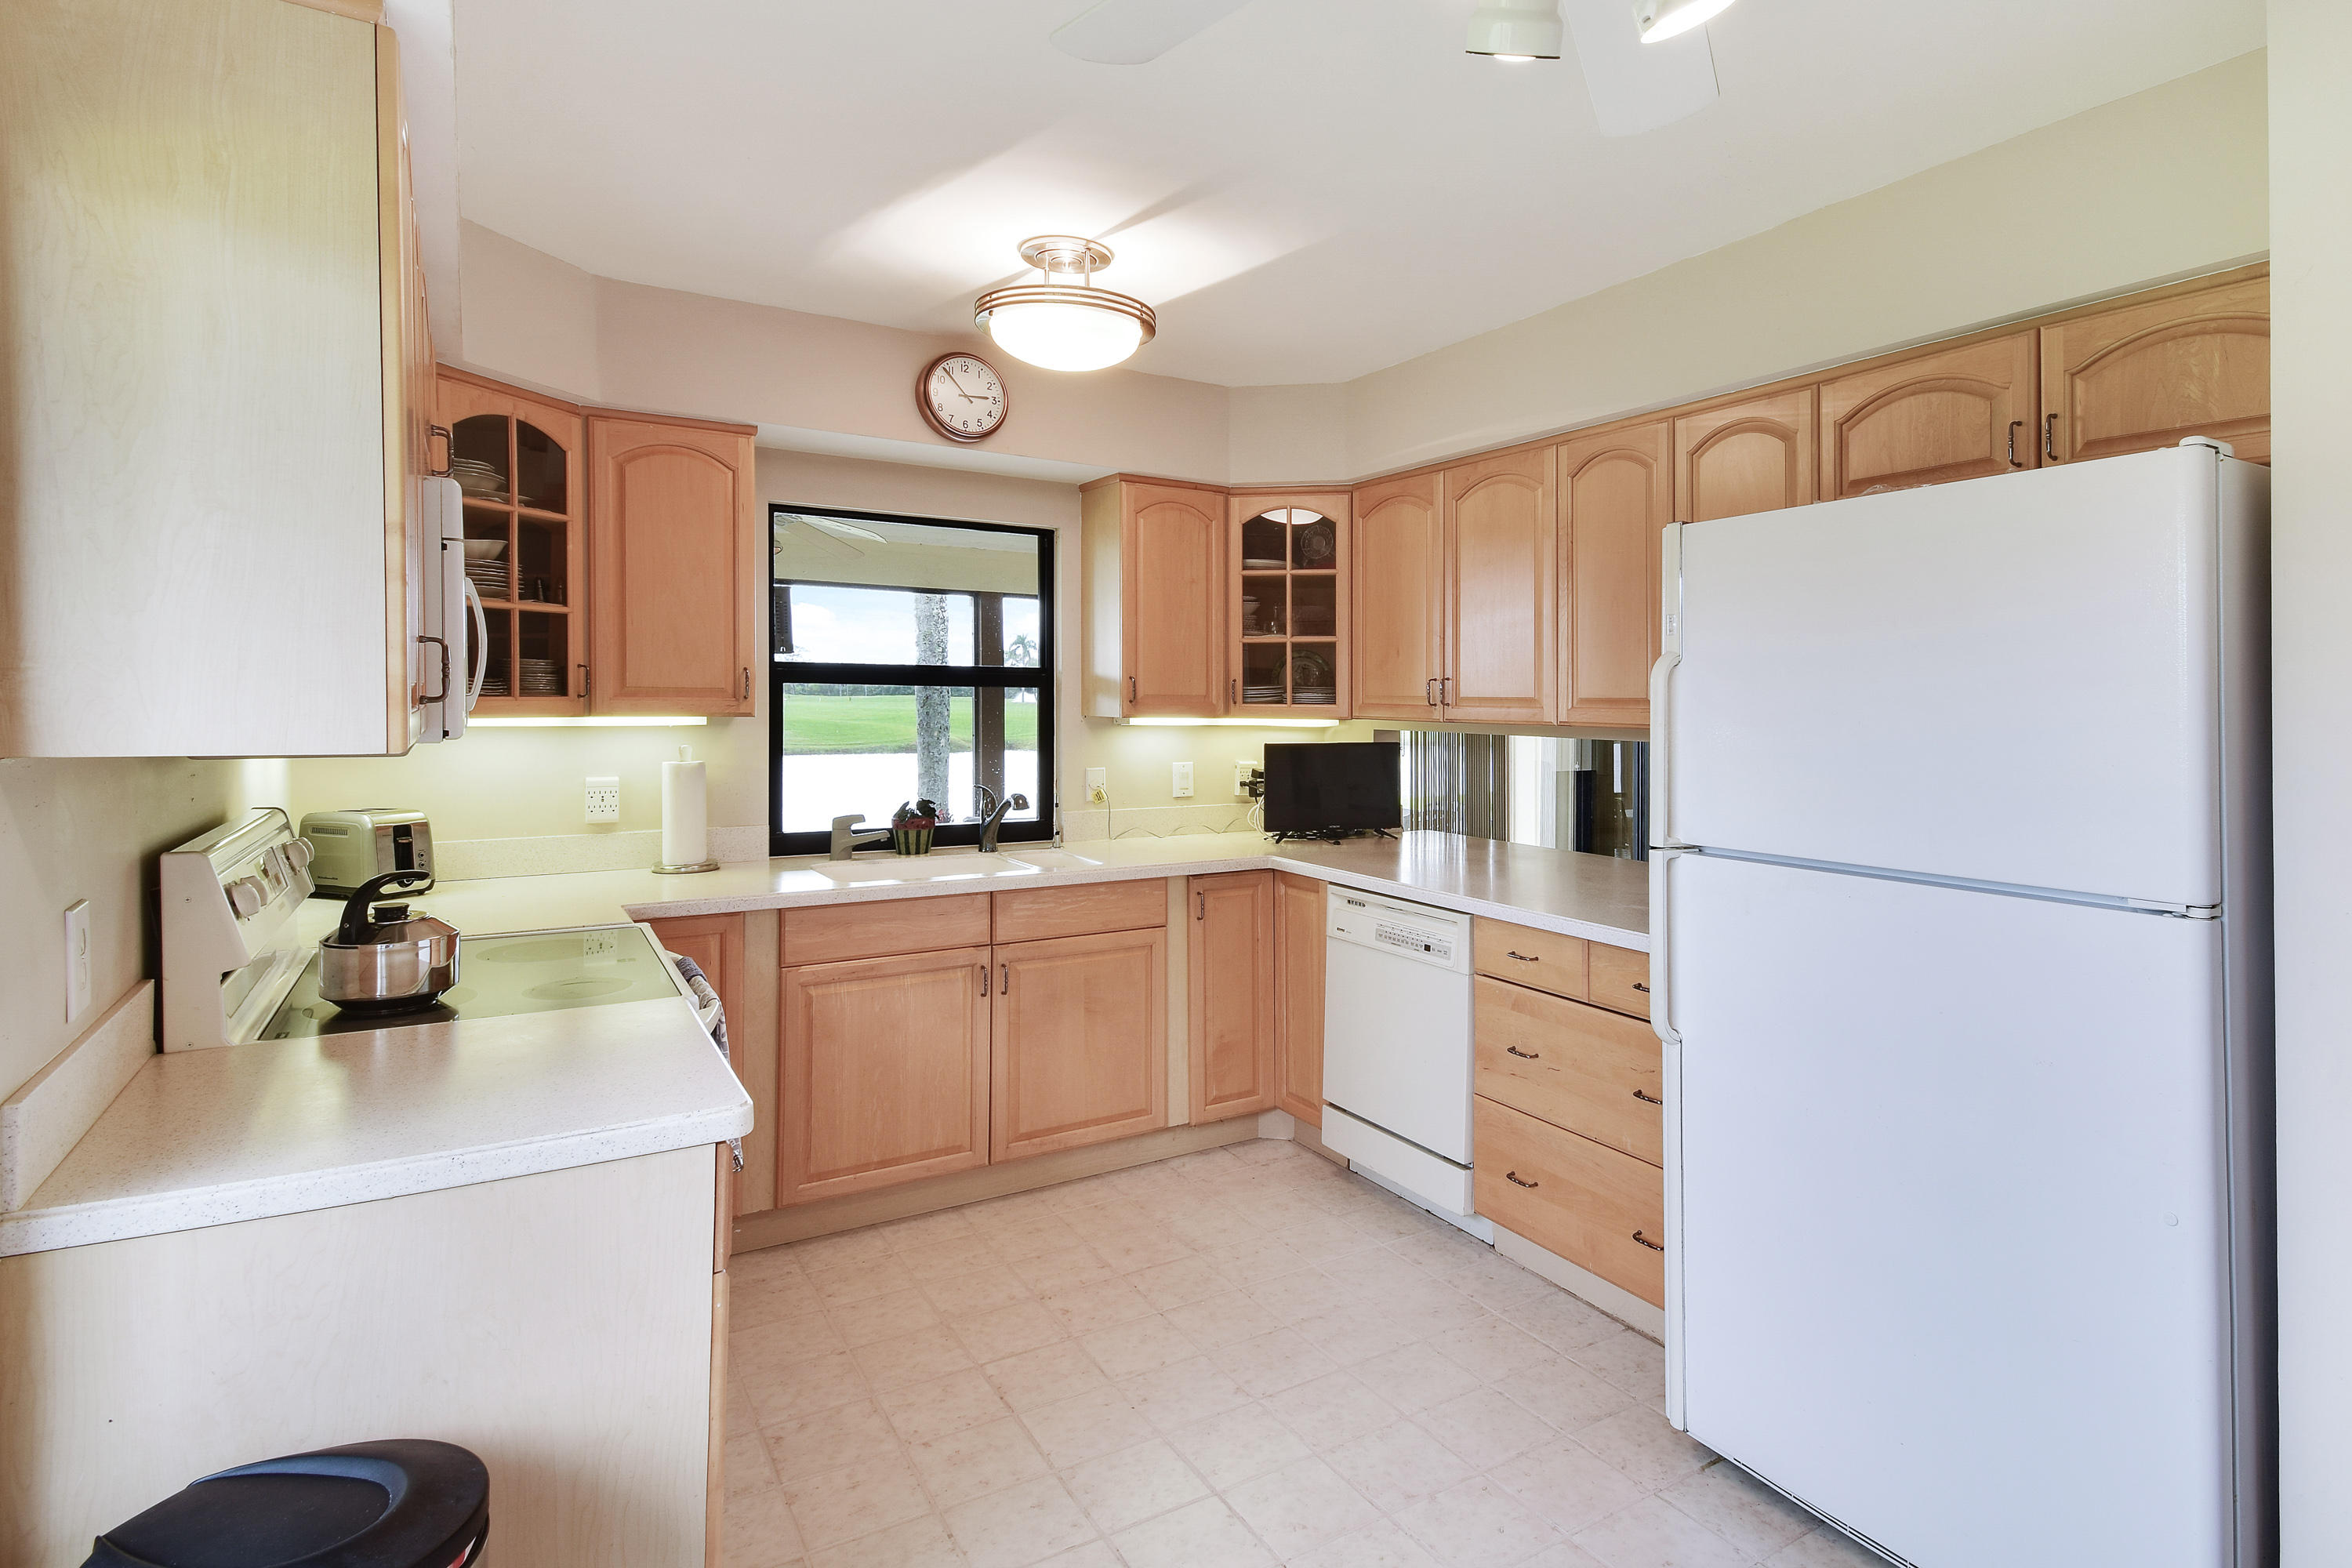 13445 Cross Pointe Drive, Palm Beach Gardens, Florida 33418, 3 Bedrooms Bedrooms, ,2 BathroomsBathrooms,A,Townhouse,Cross Pointe,RX-10502096